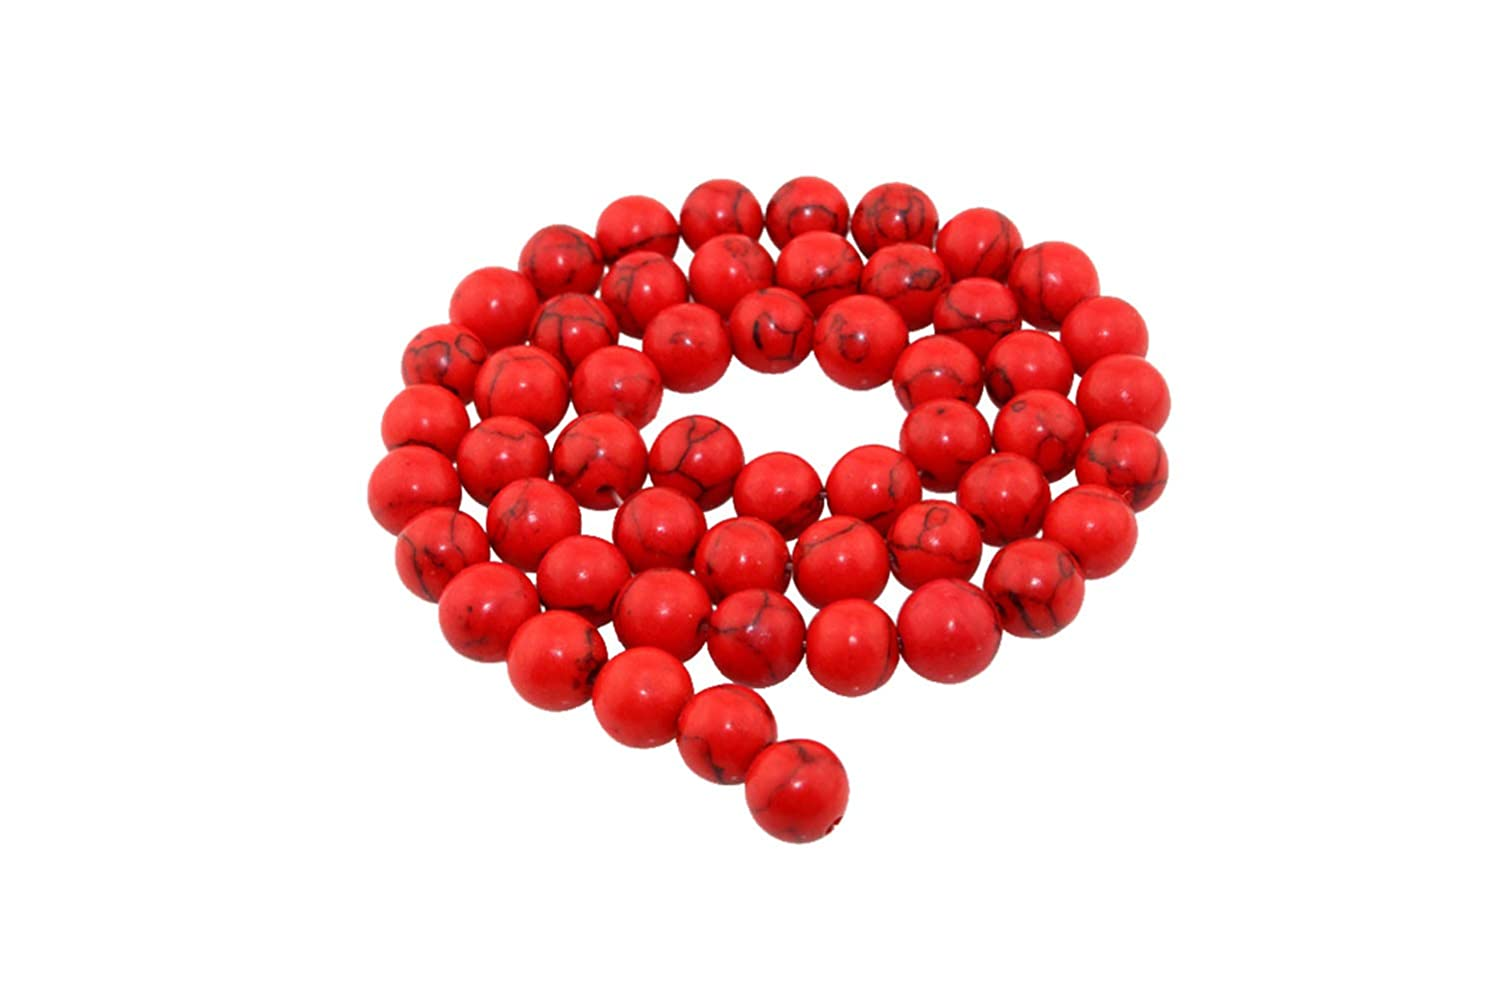 Natural Red turquoise Smooth Round Loose Beads for Bracelet Necklace Earrings Jewelry Making Crafts Design Healing